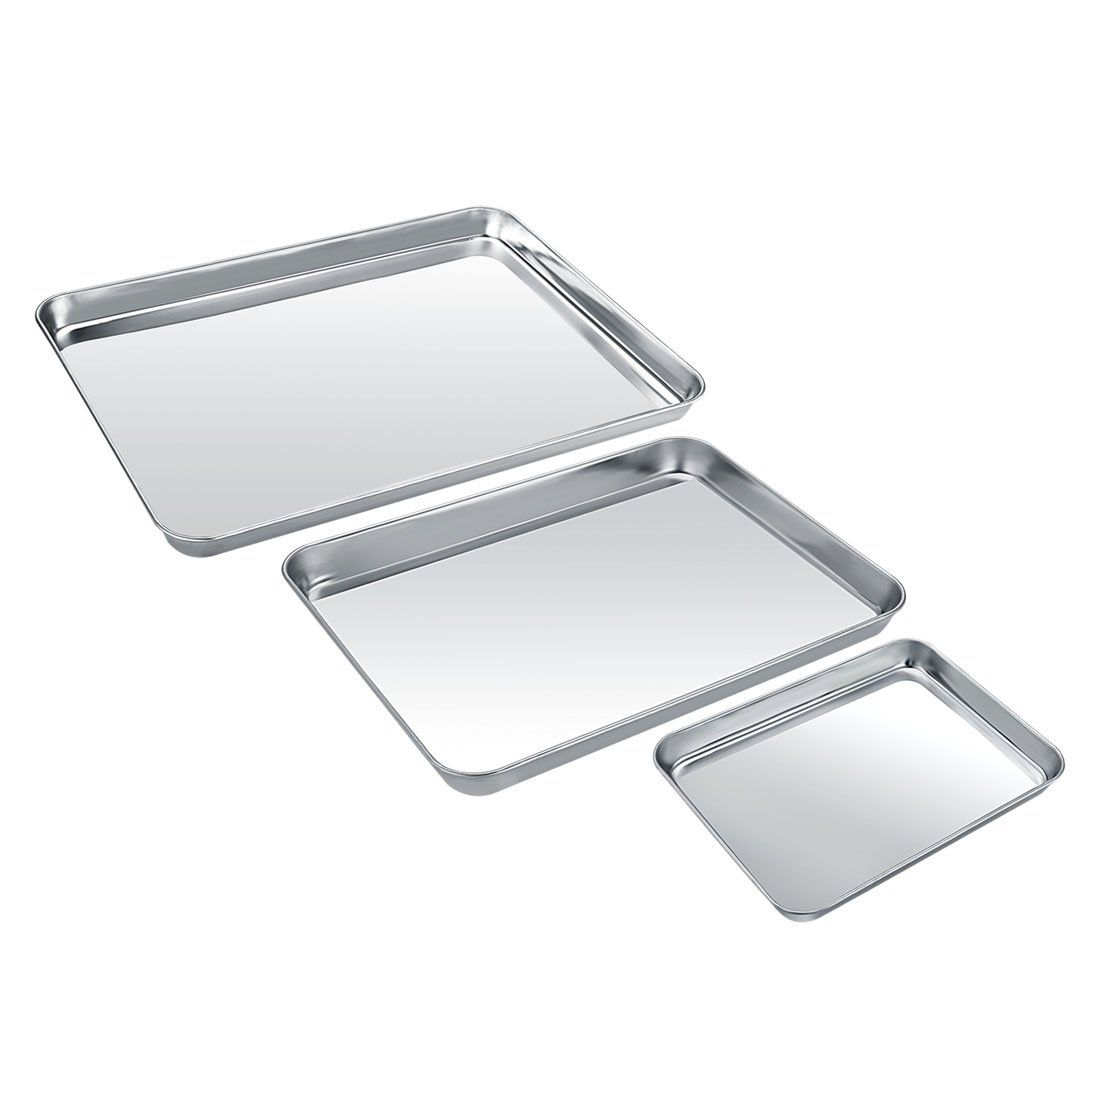 Baking Sheet Set Of 3 Zacfton Stainless Steel Cookie Sheet Set 3 Pieces Toaster Oven Tray Pan Rect Stainless Steel Cookie Sheet Bakeware Set How To Clean Rust